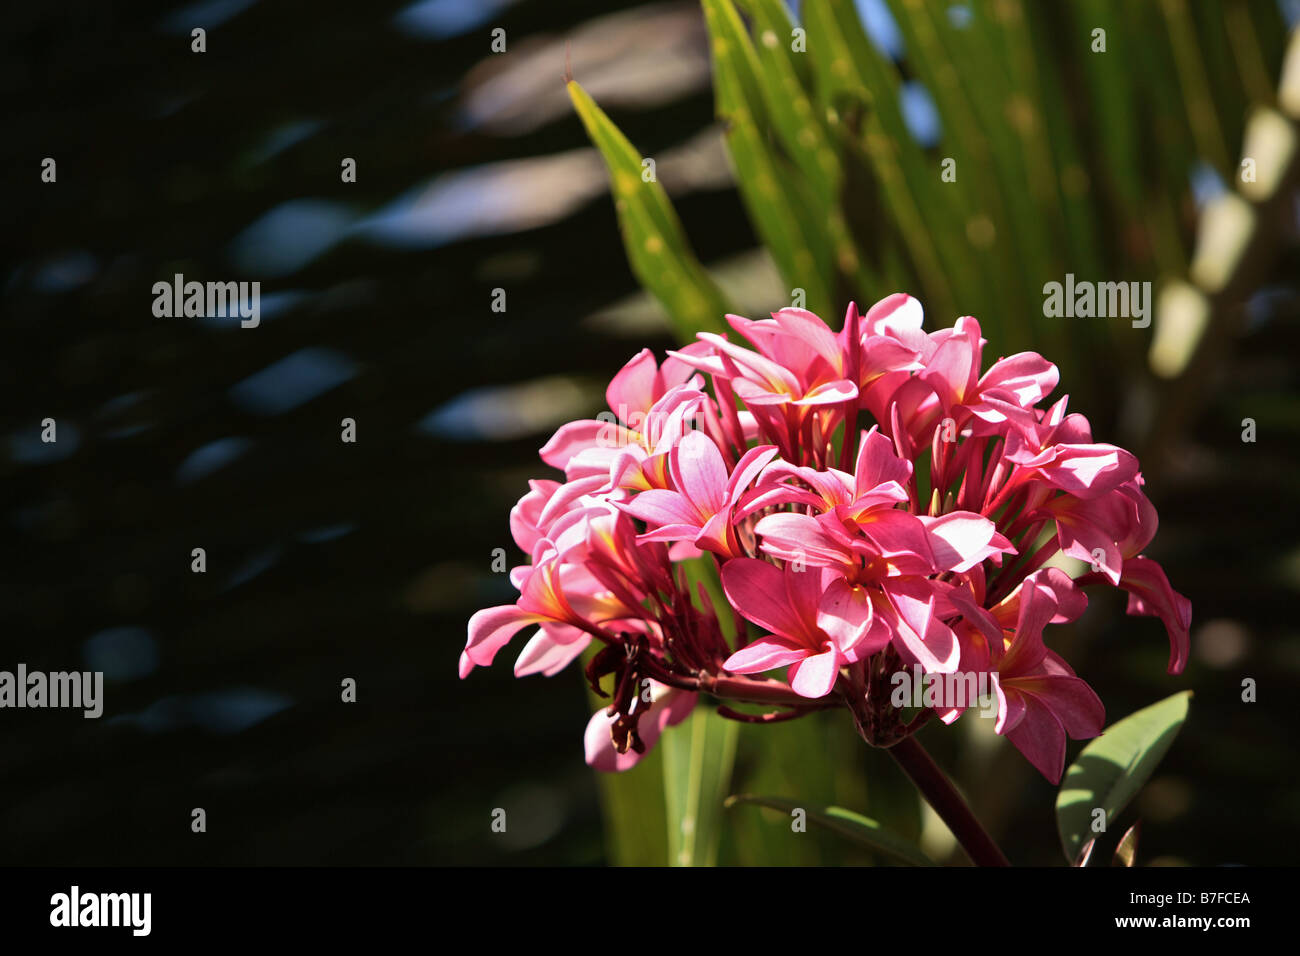 Pink Cluster Of Tropical Flowers Stock Photo 21852050 Alamy